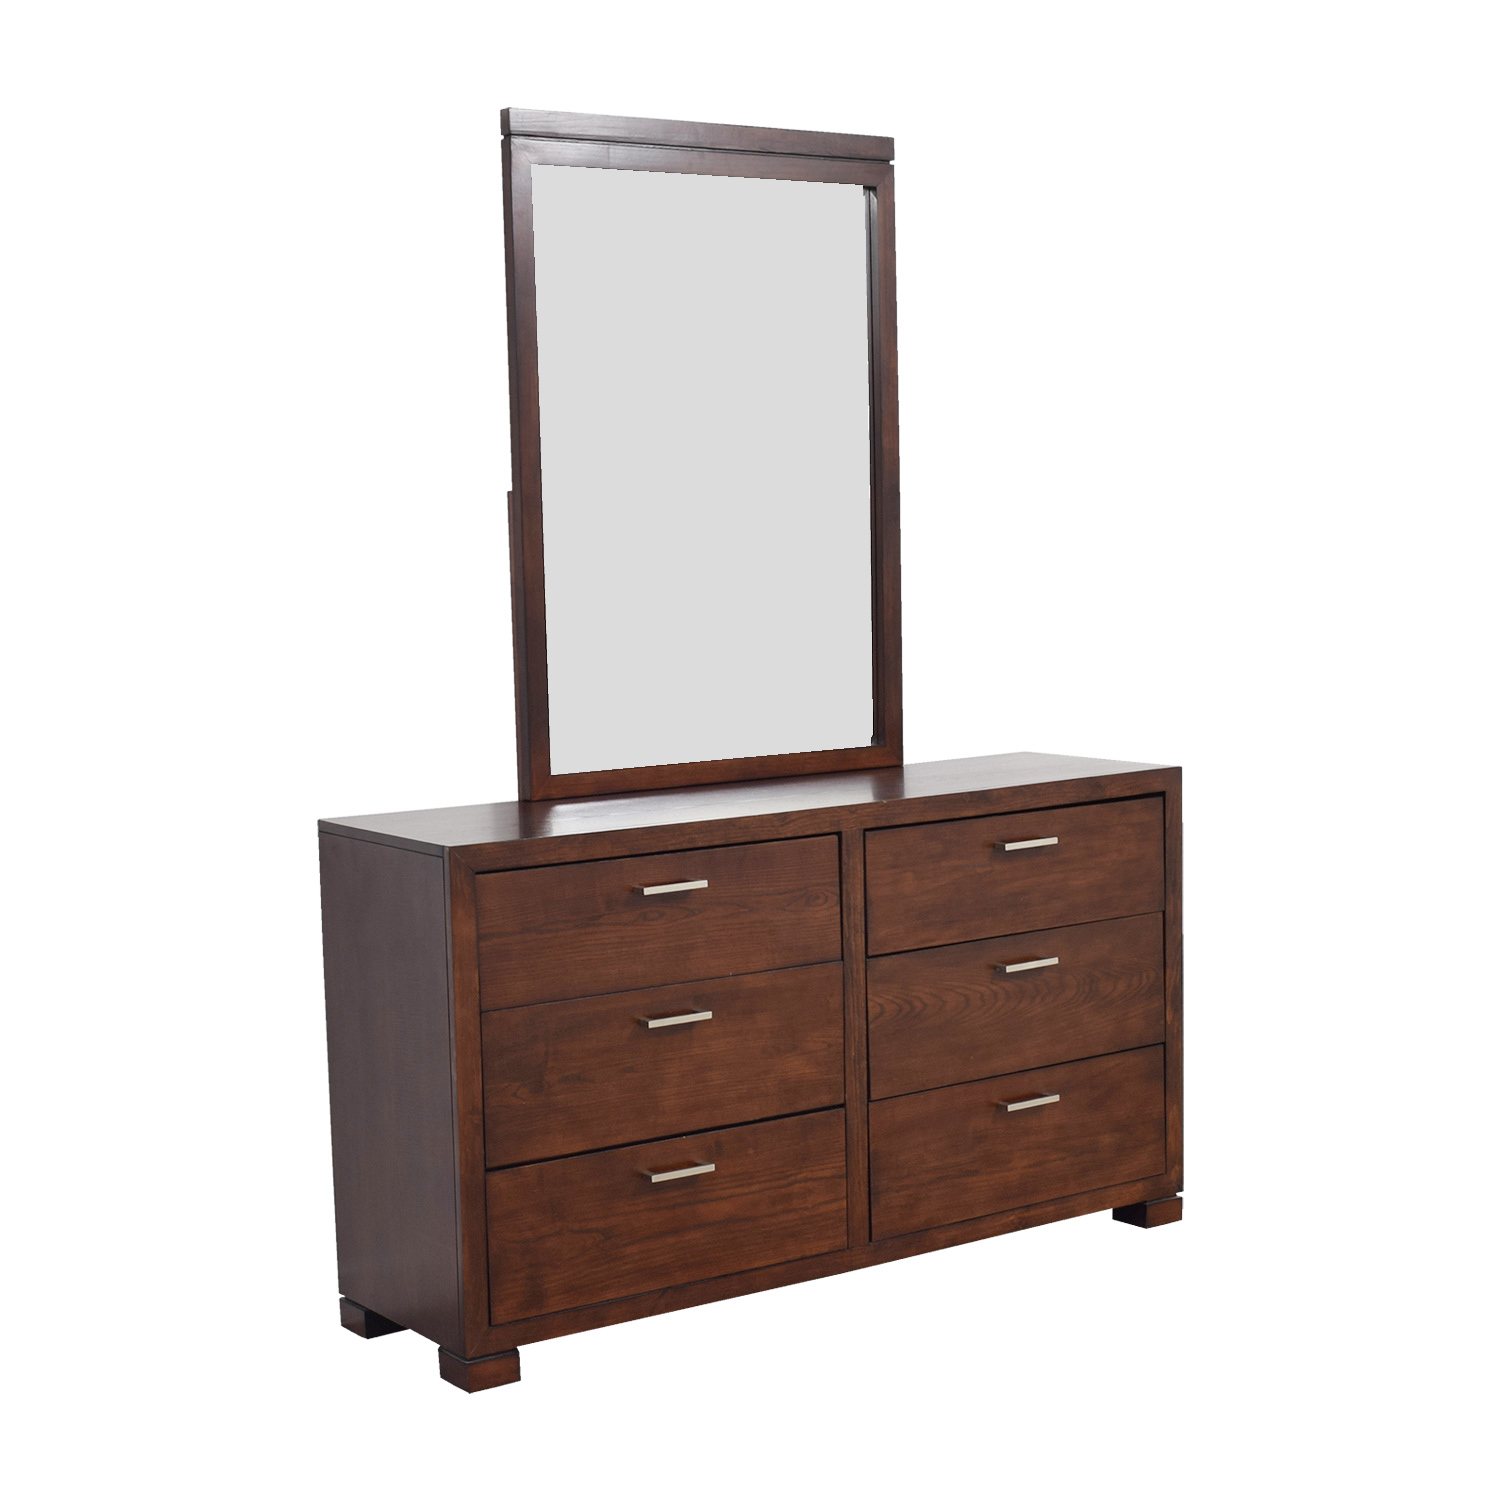 Macy's Macy's Six-Drawer Dresser with Mirror price